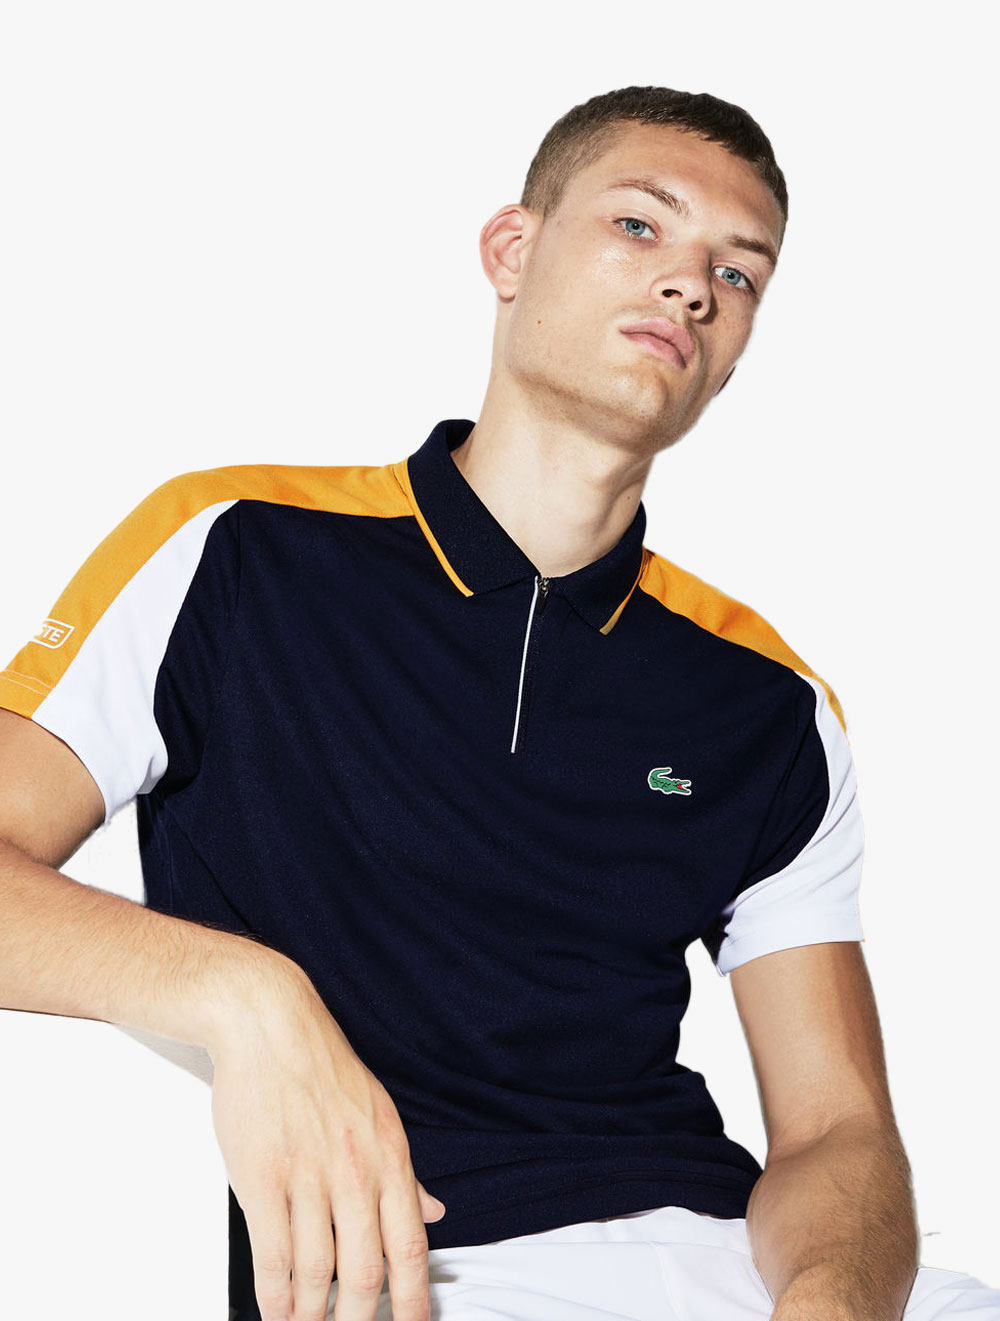 Tennis Pique Zip Lacoste Bands Contrast Polo Neck Men's Sport DYEH9IW2e